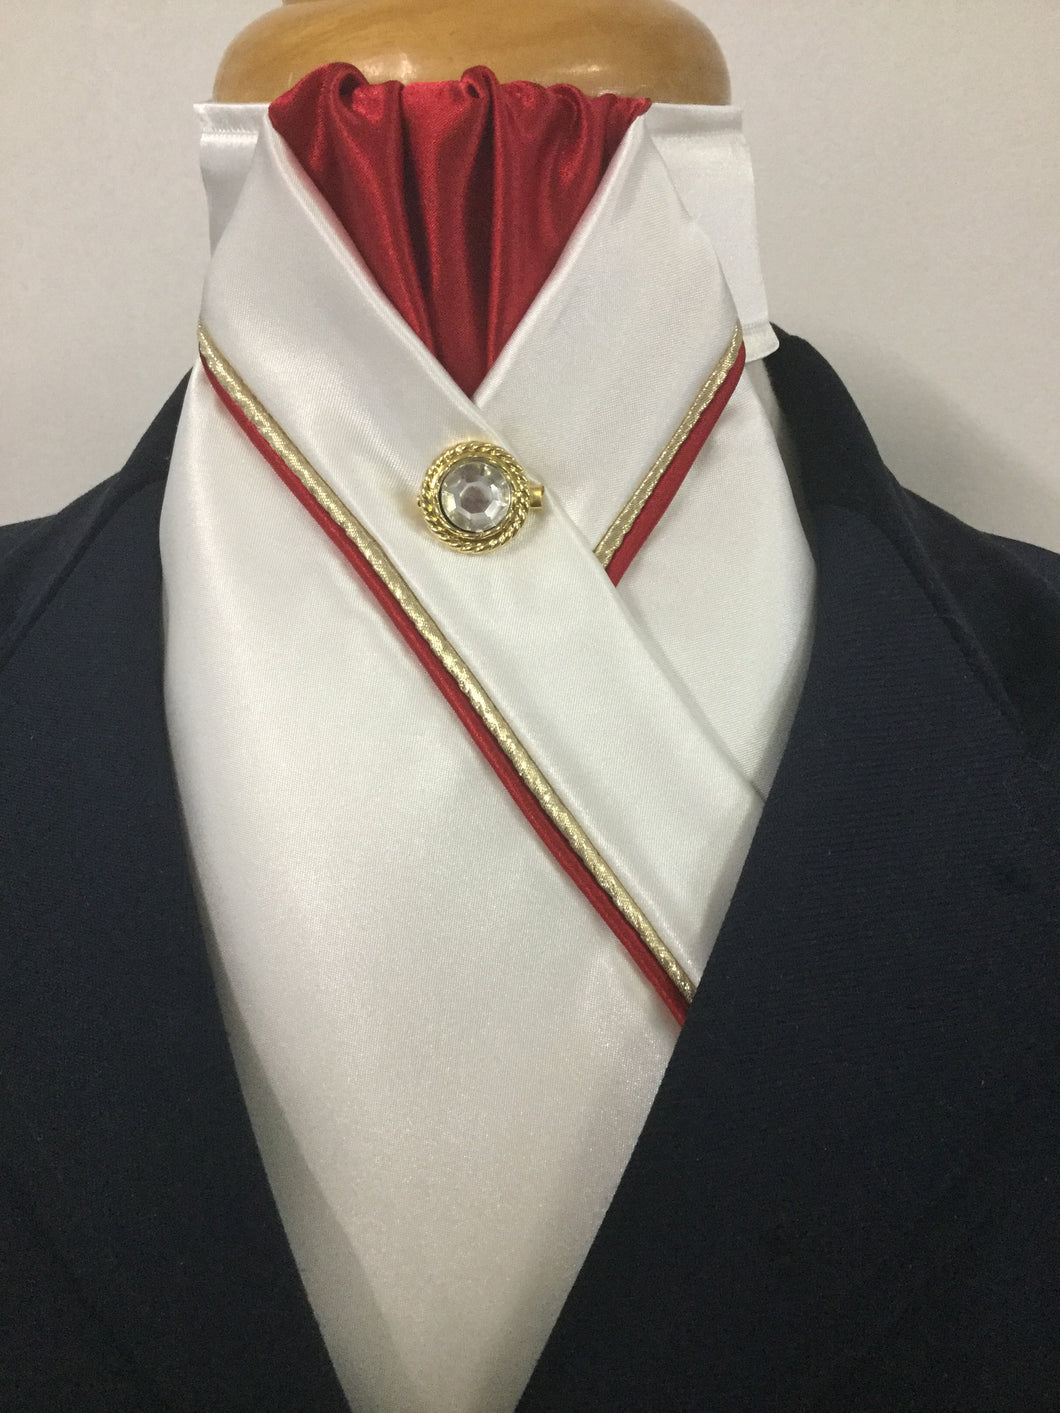 HHD Cream Satin Custom Pretied Stock Tie Red & Gold